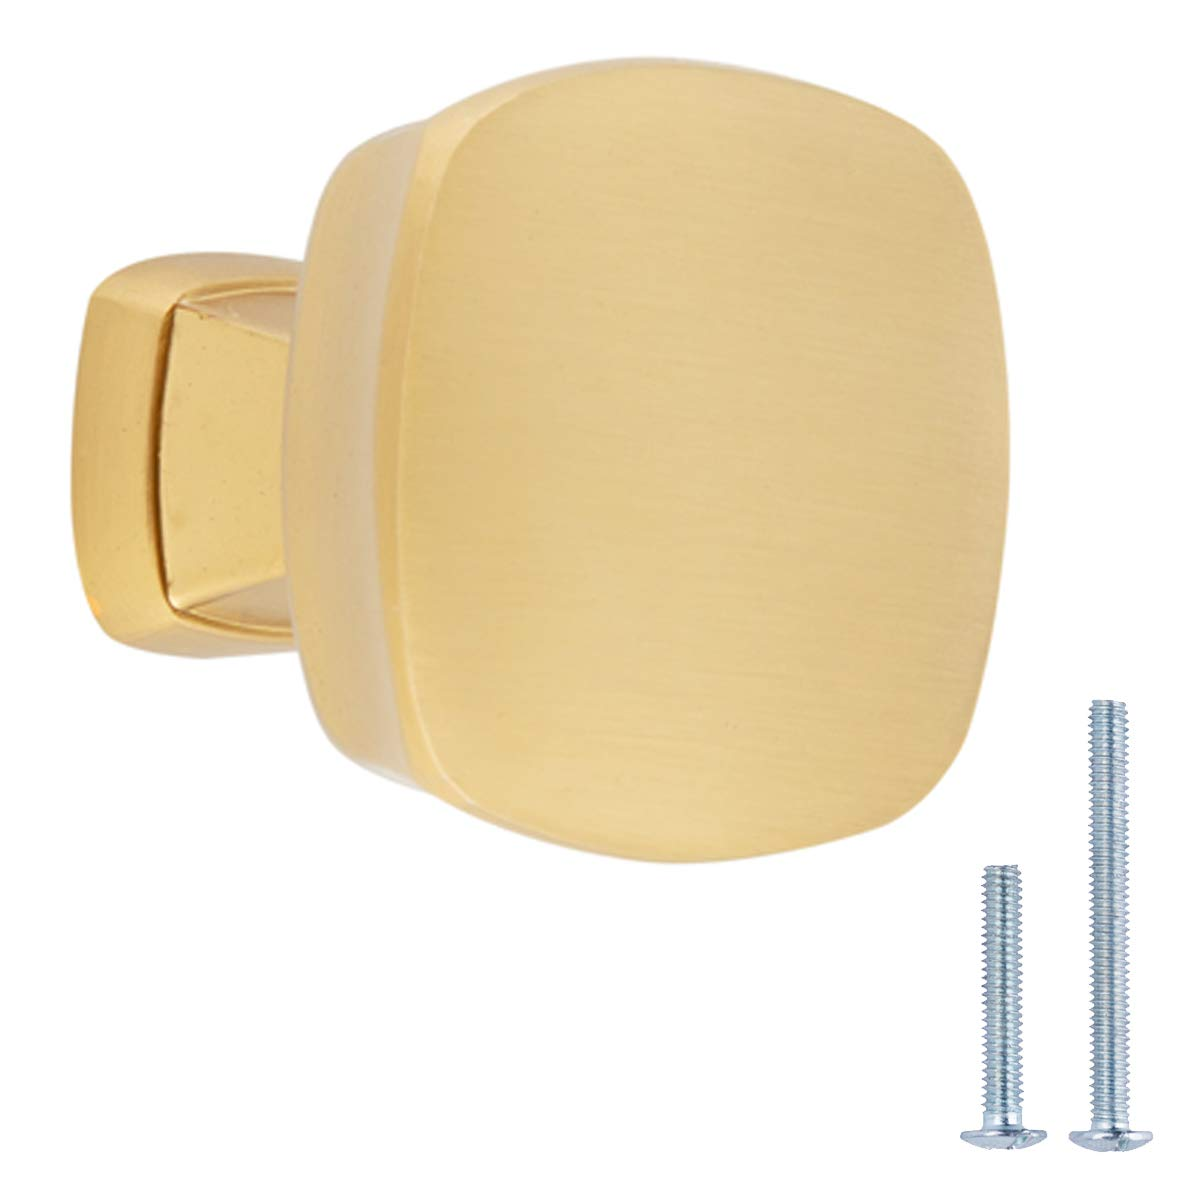 AmazonBasics Rounded Square Cabinet Knob, 1.26'' Diameter, Golden Champagne, 10-pack